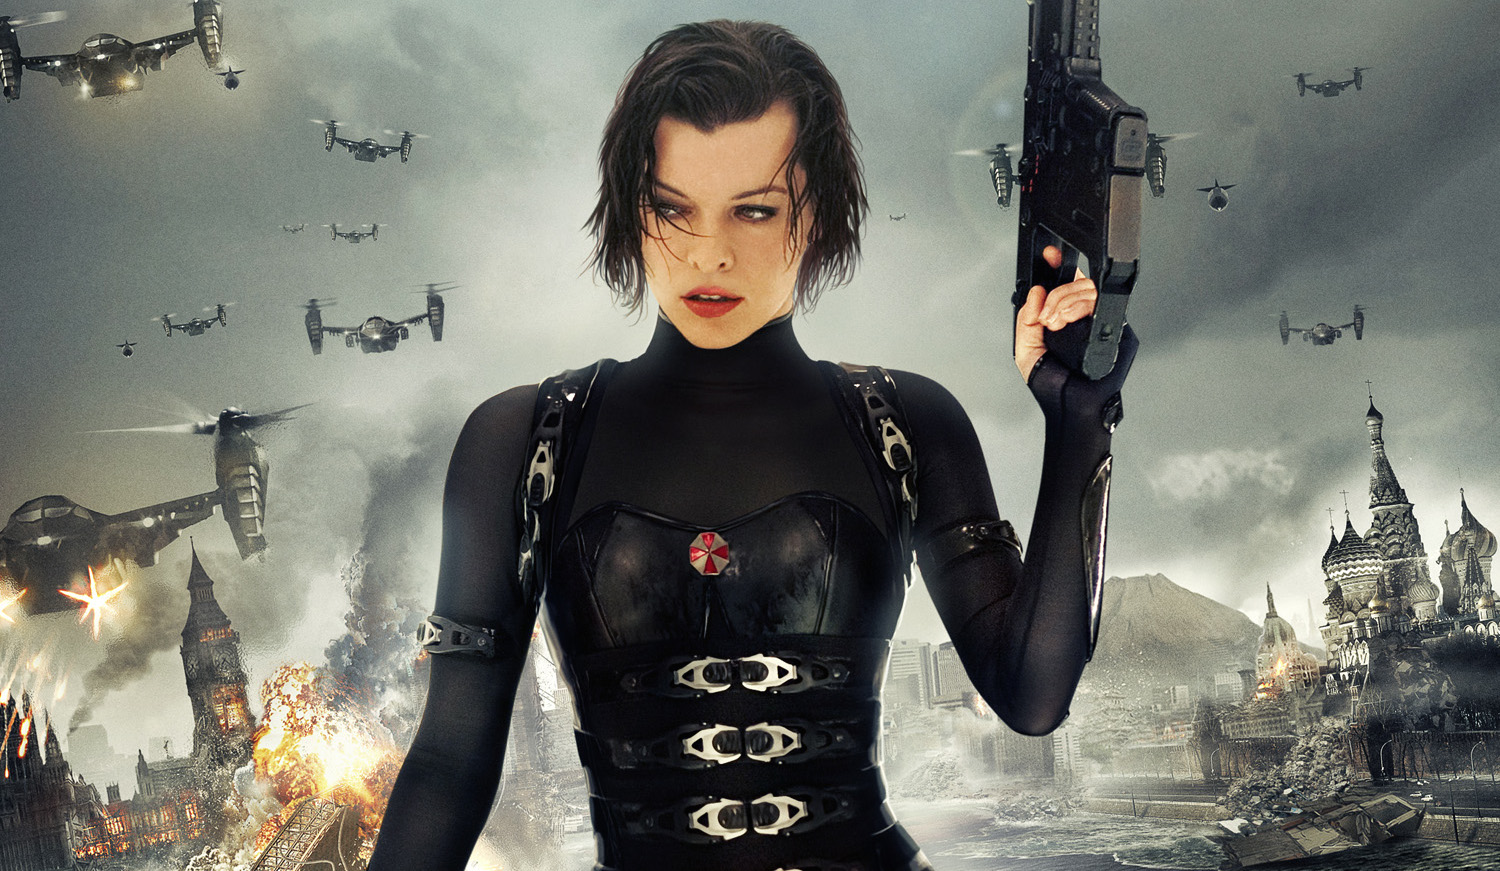 WATCH: 'Resident Evil: The Final Chapter' Teaser Trailer Sneak Peek